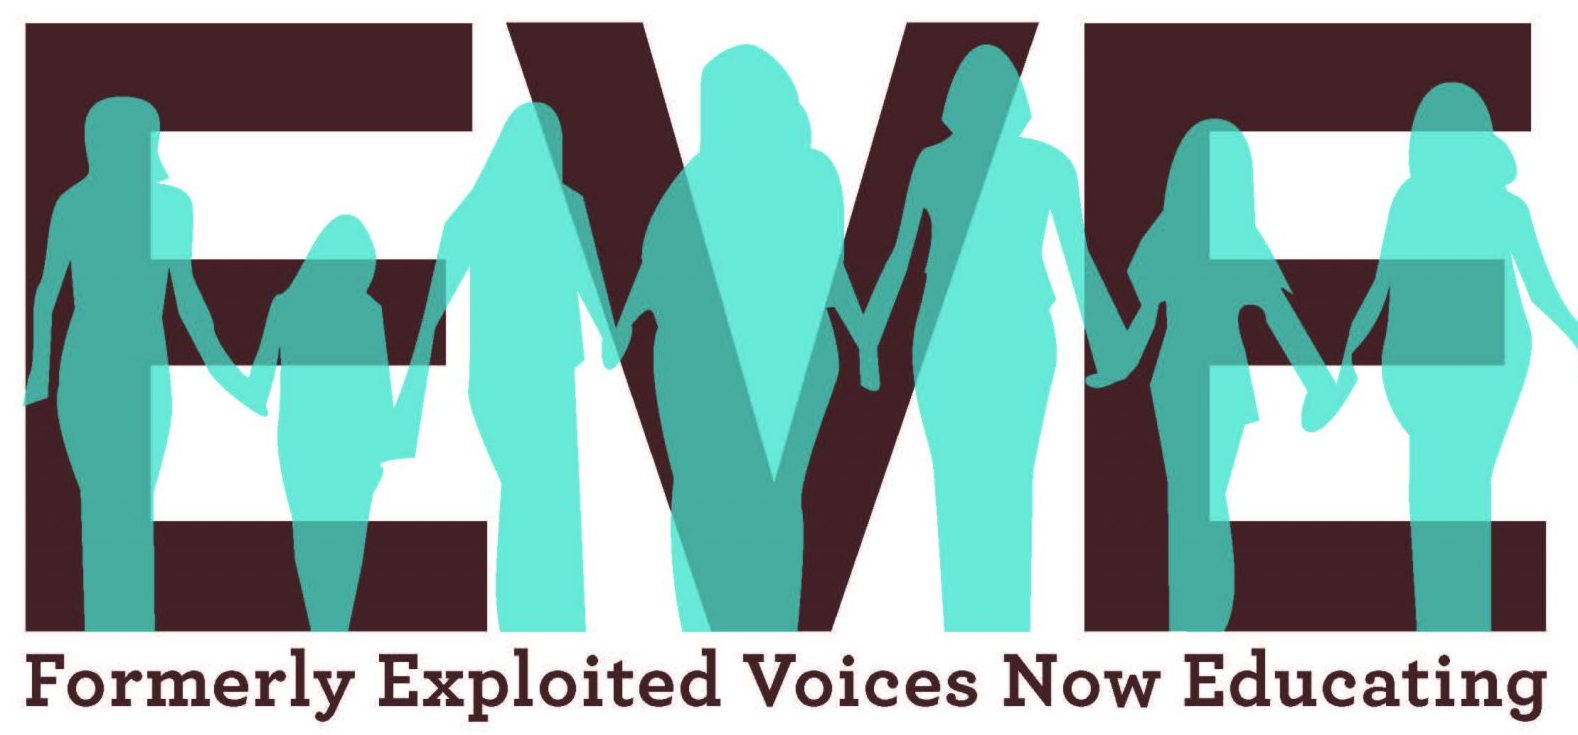 Formerly Exploited Voices Now Educating